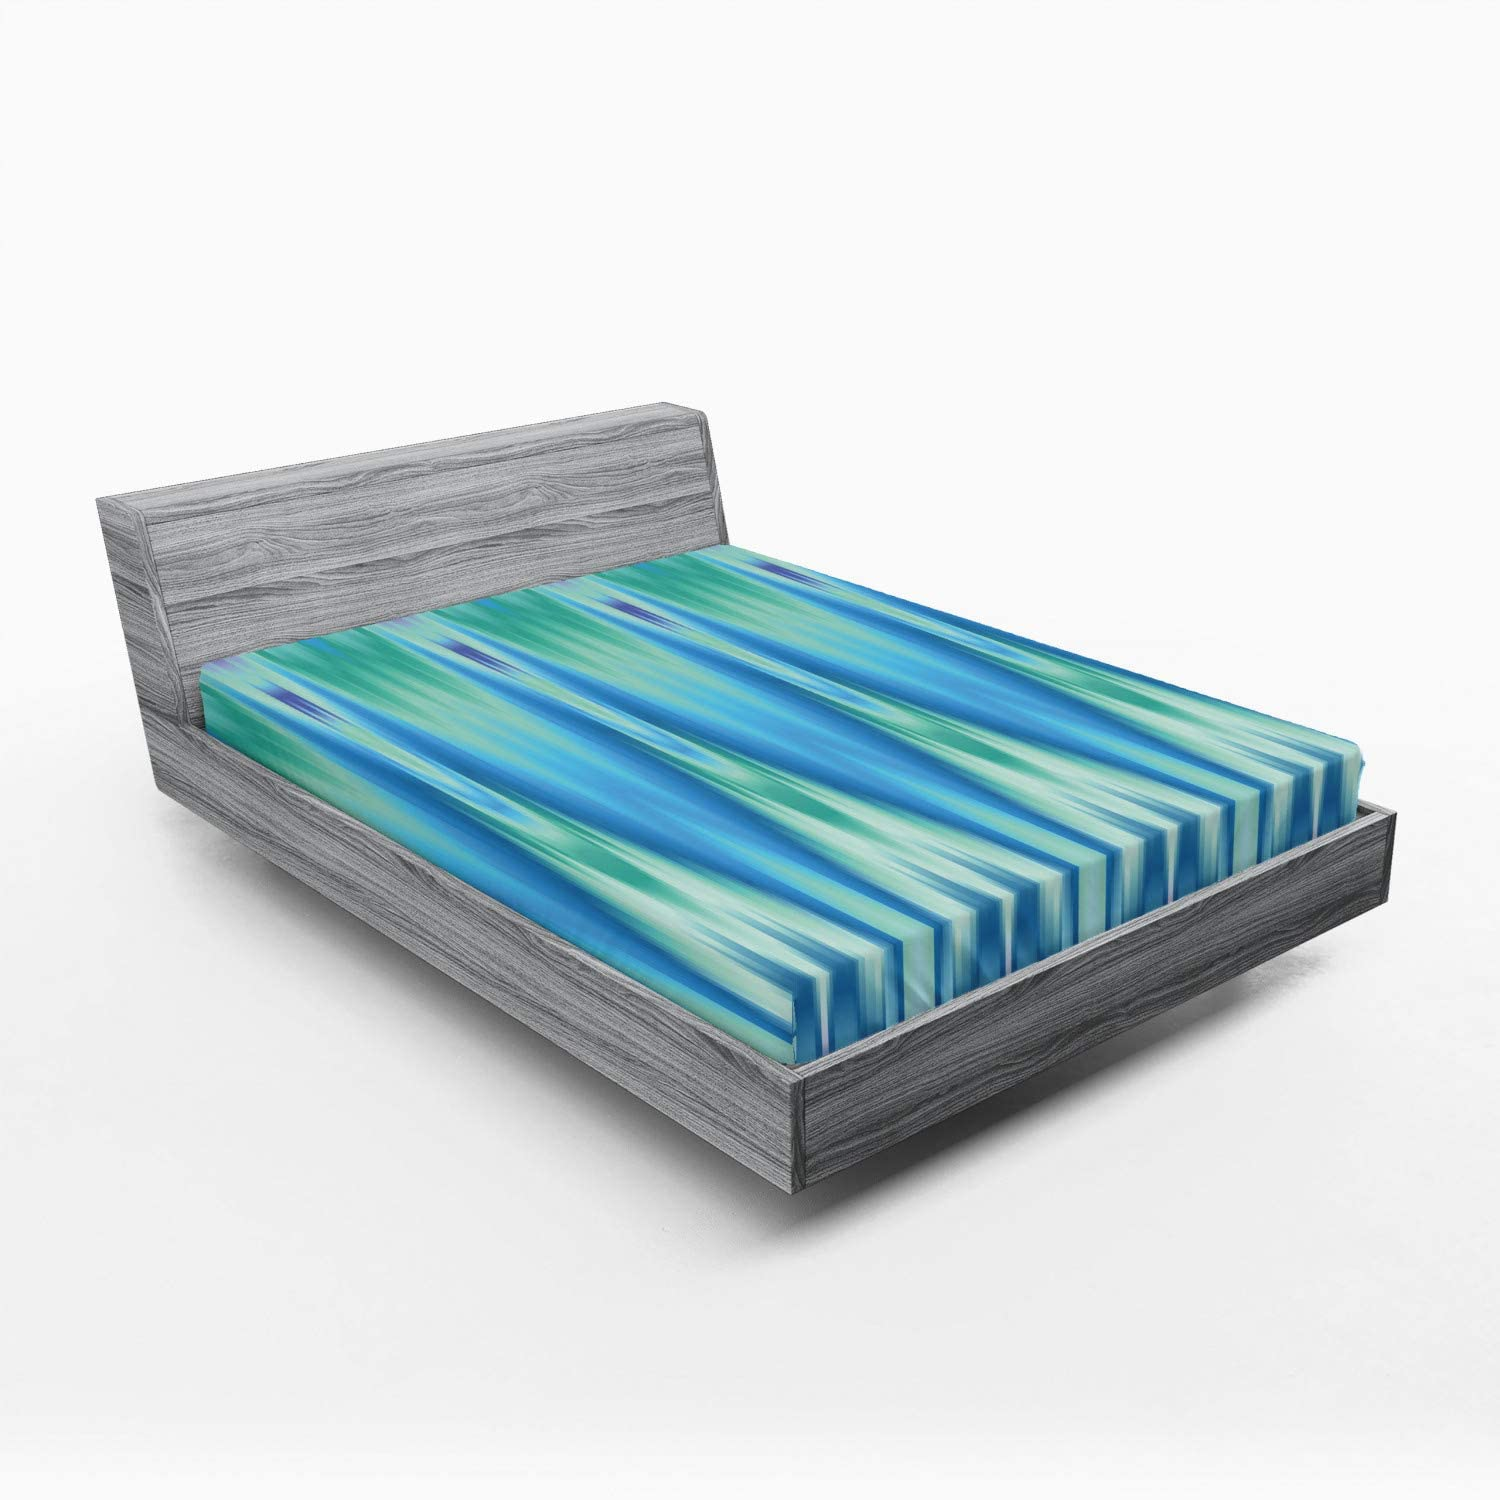 Lunarable Teal Fitted Topics on TV Sheet Chicago Mall Colorful Ikat Pattern Design Style